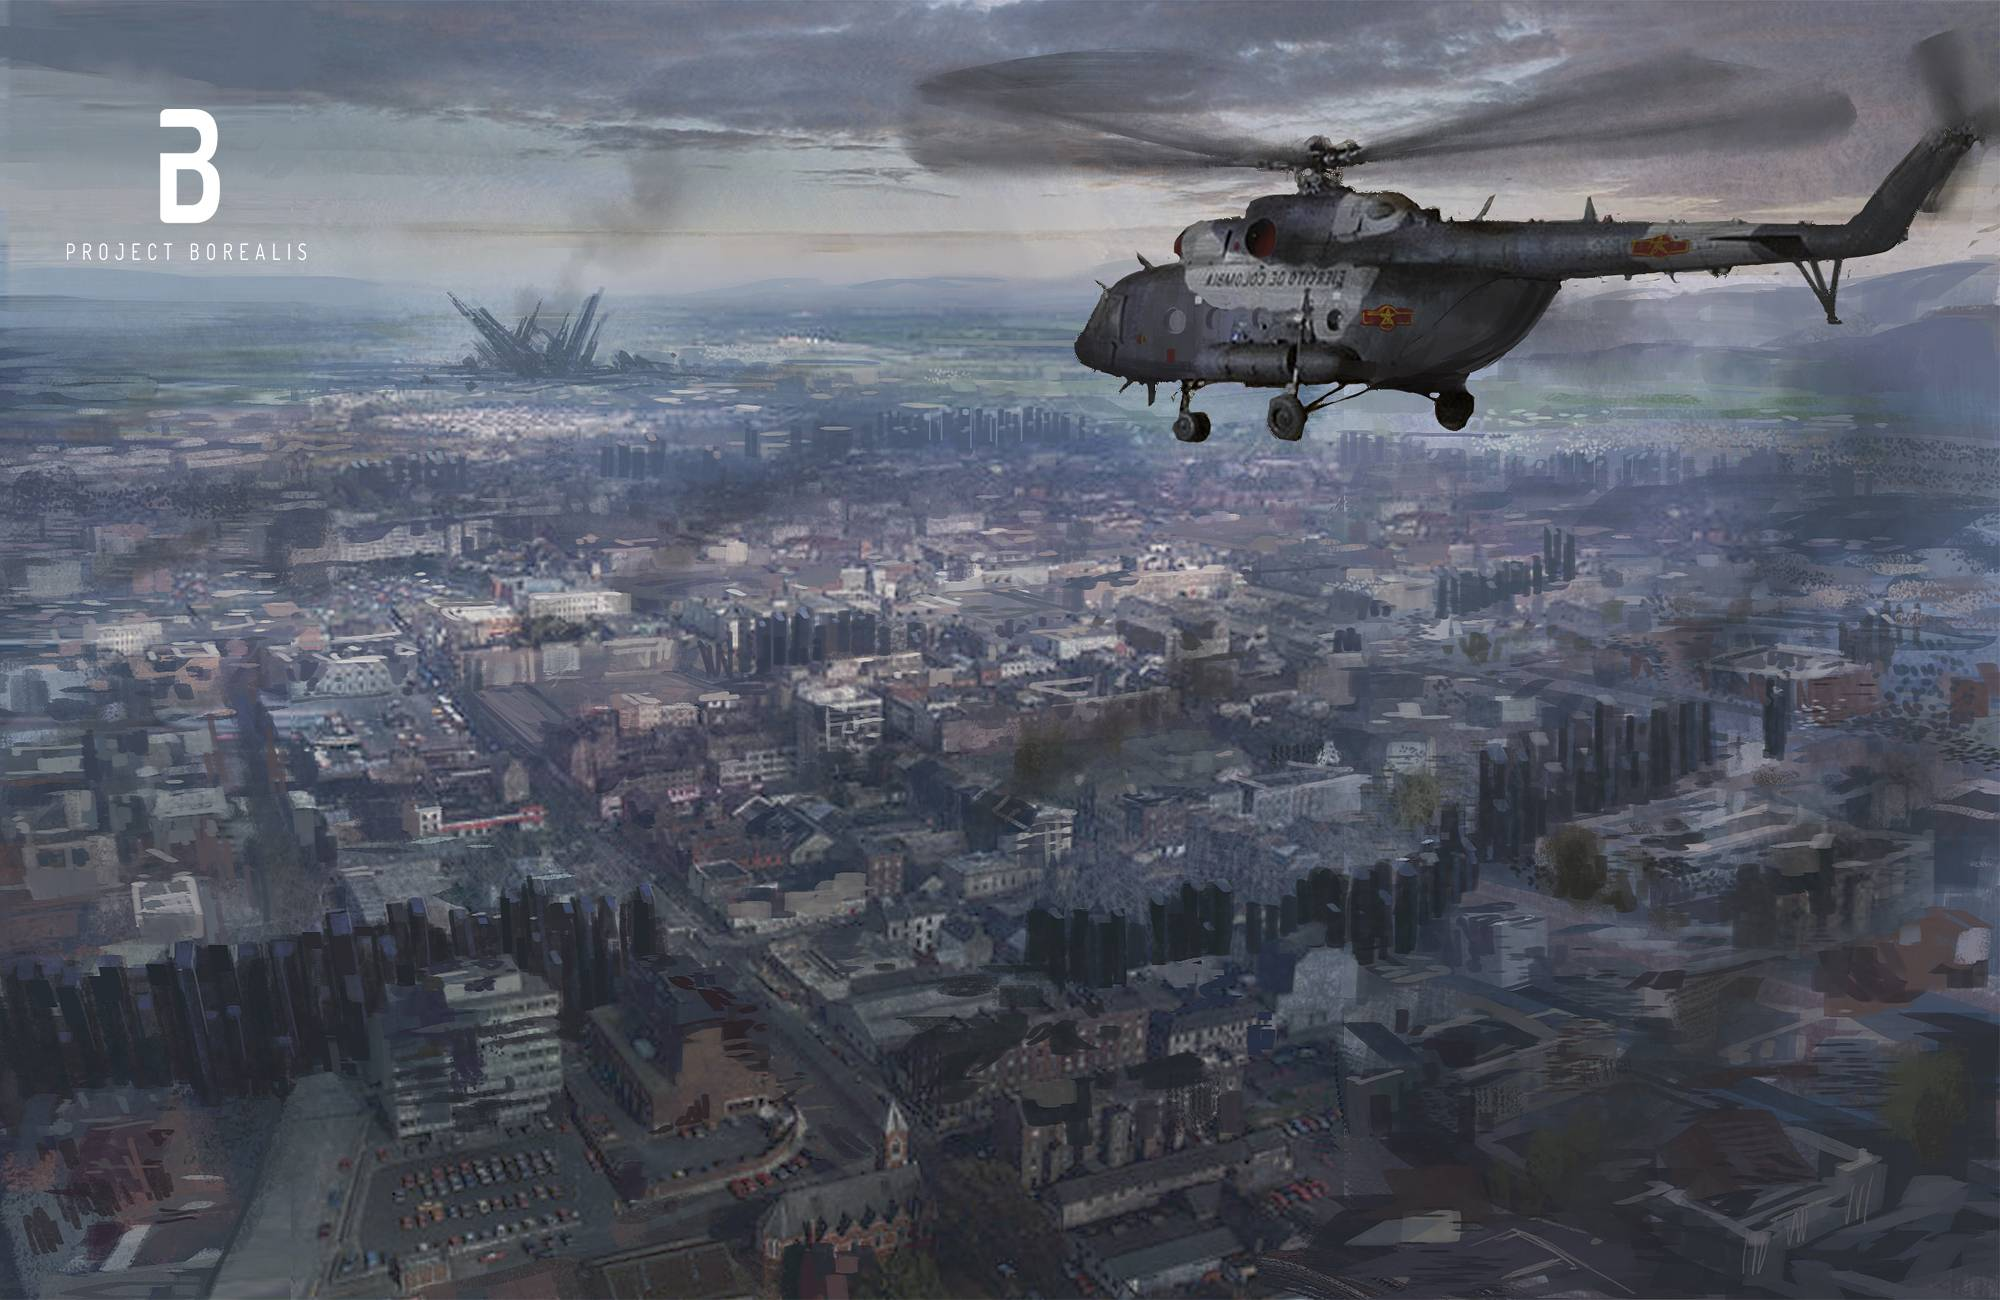 Group of fans working on bringing Half-Life 2: Episode 3's plot summary to life